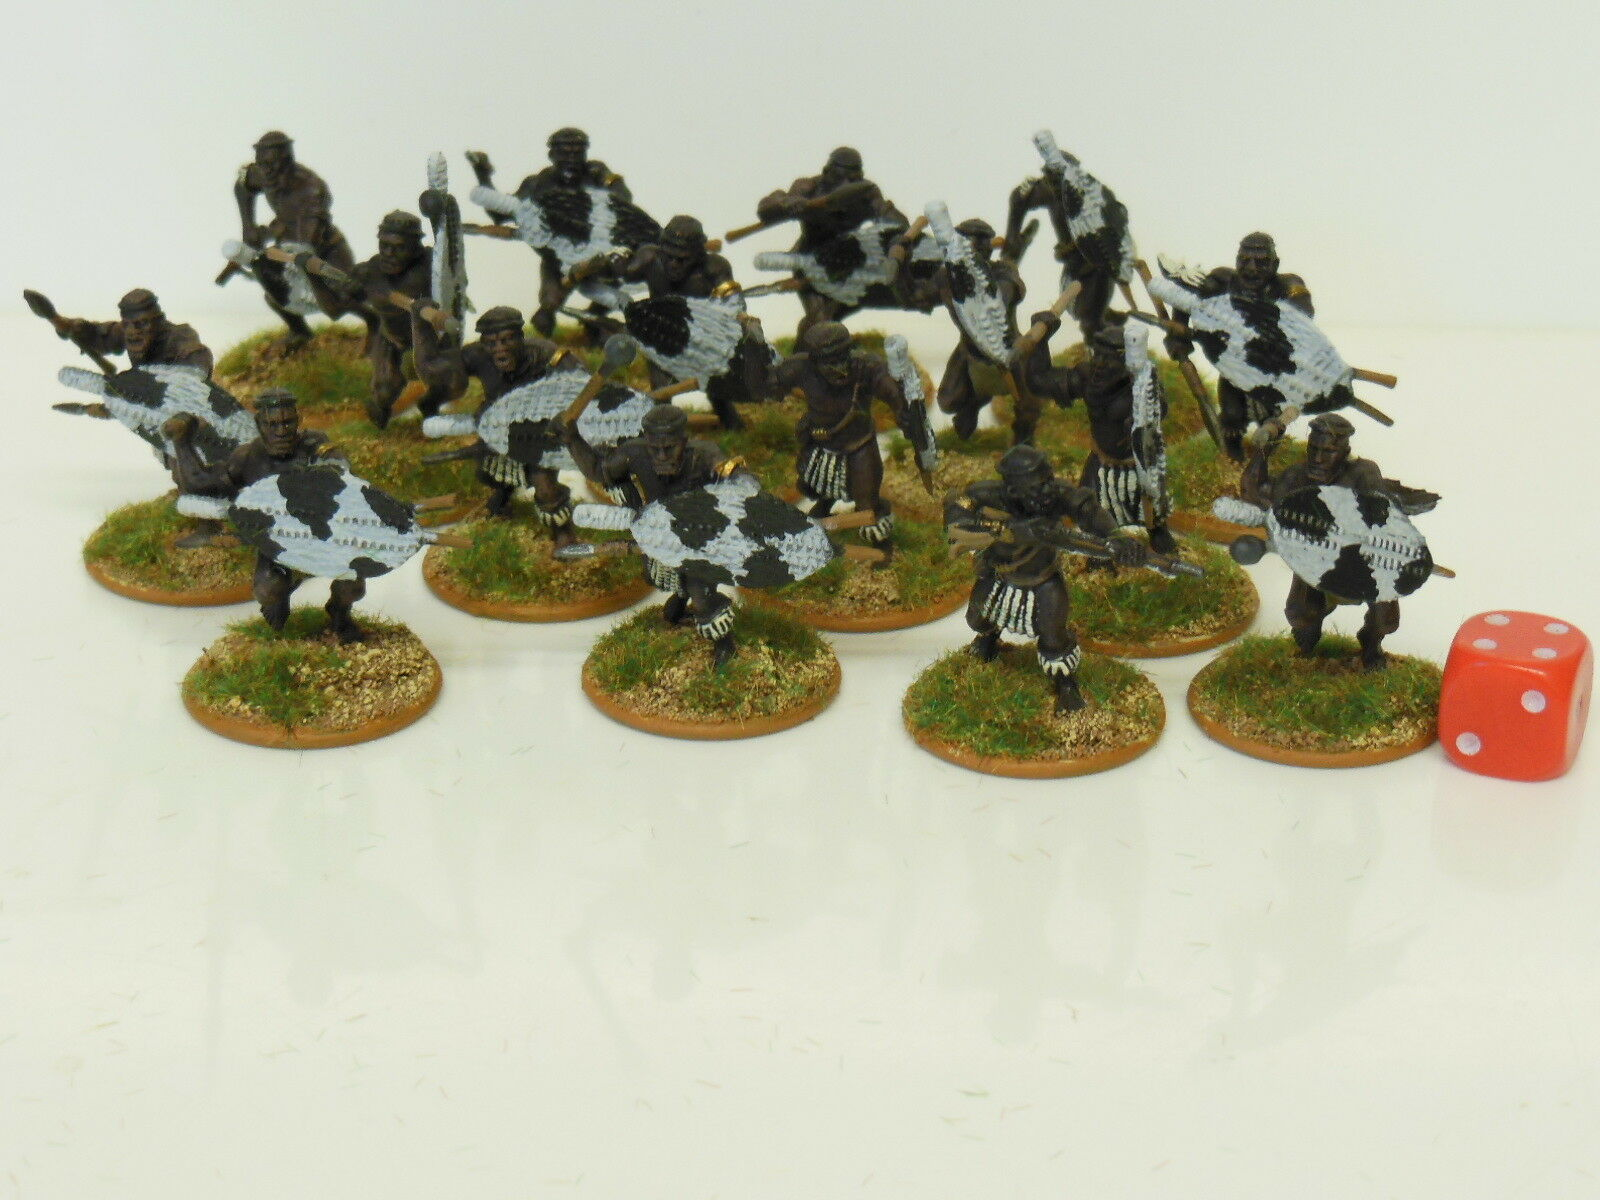 28mm Zulu Warriors - Zulu Wars   Darkest Africa - Painted & Based (R2)